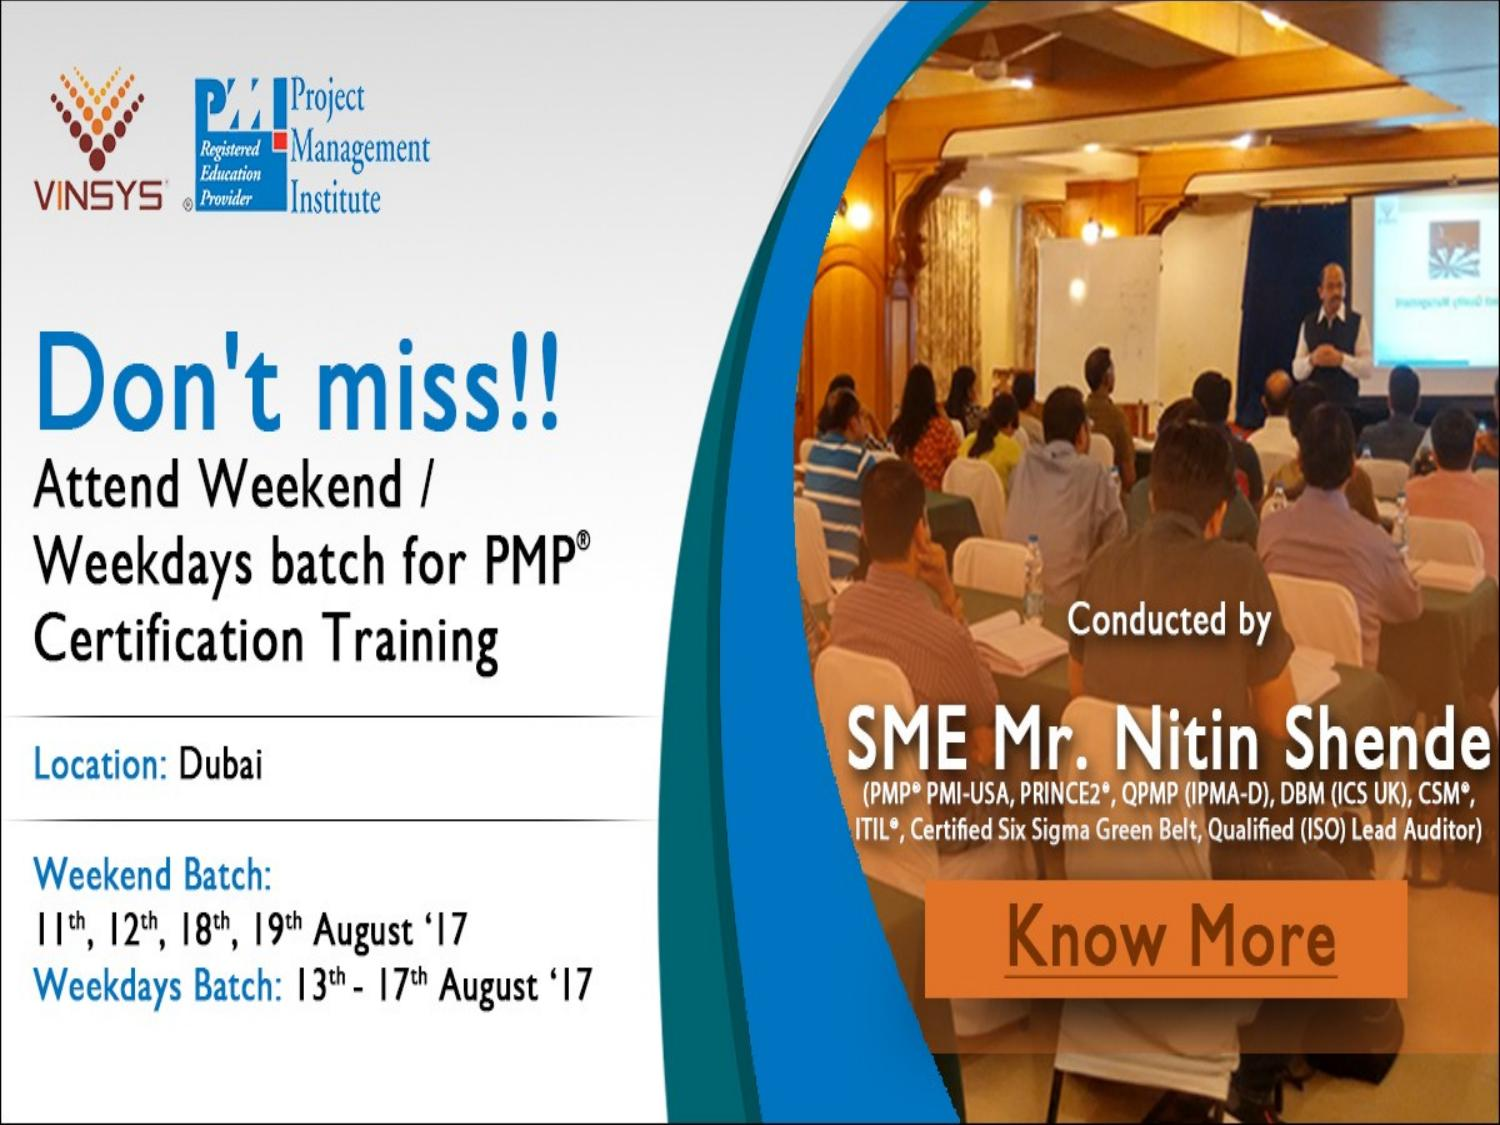 Pmp Training Certification Course In Dubai Vinsys By Vinsys Issuu